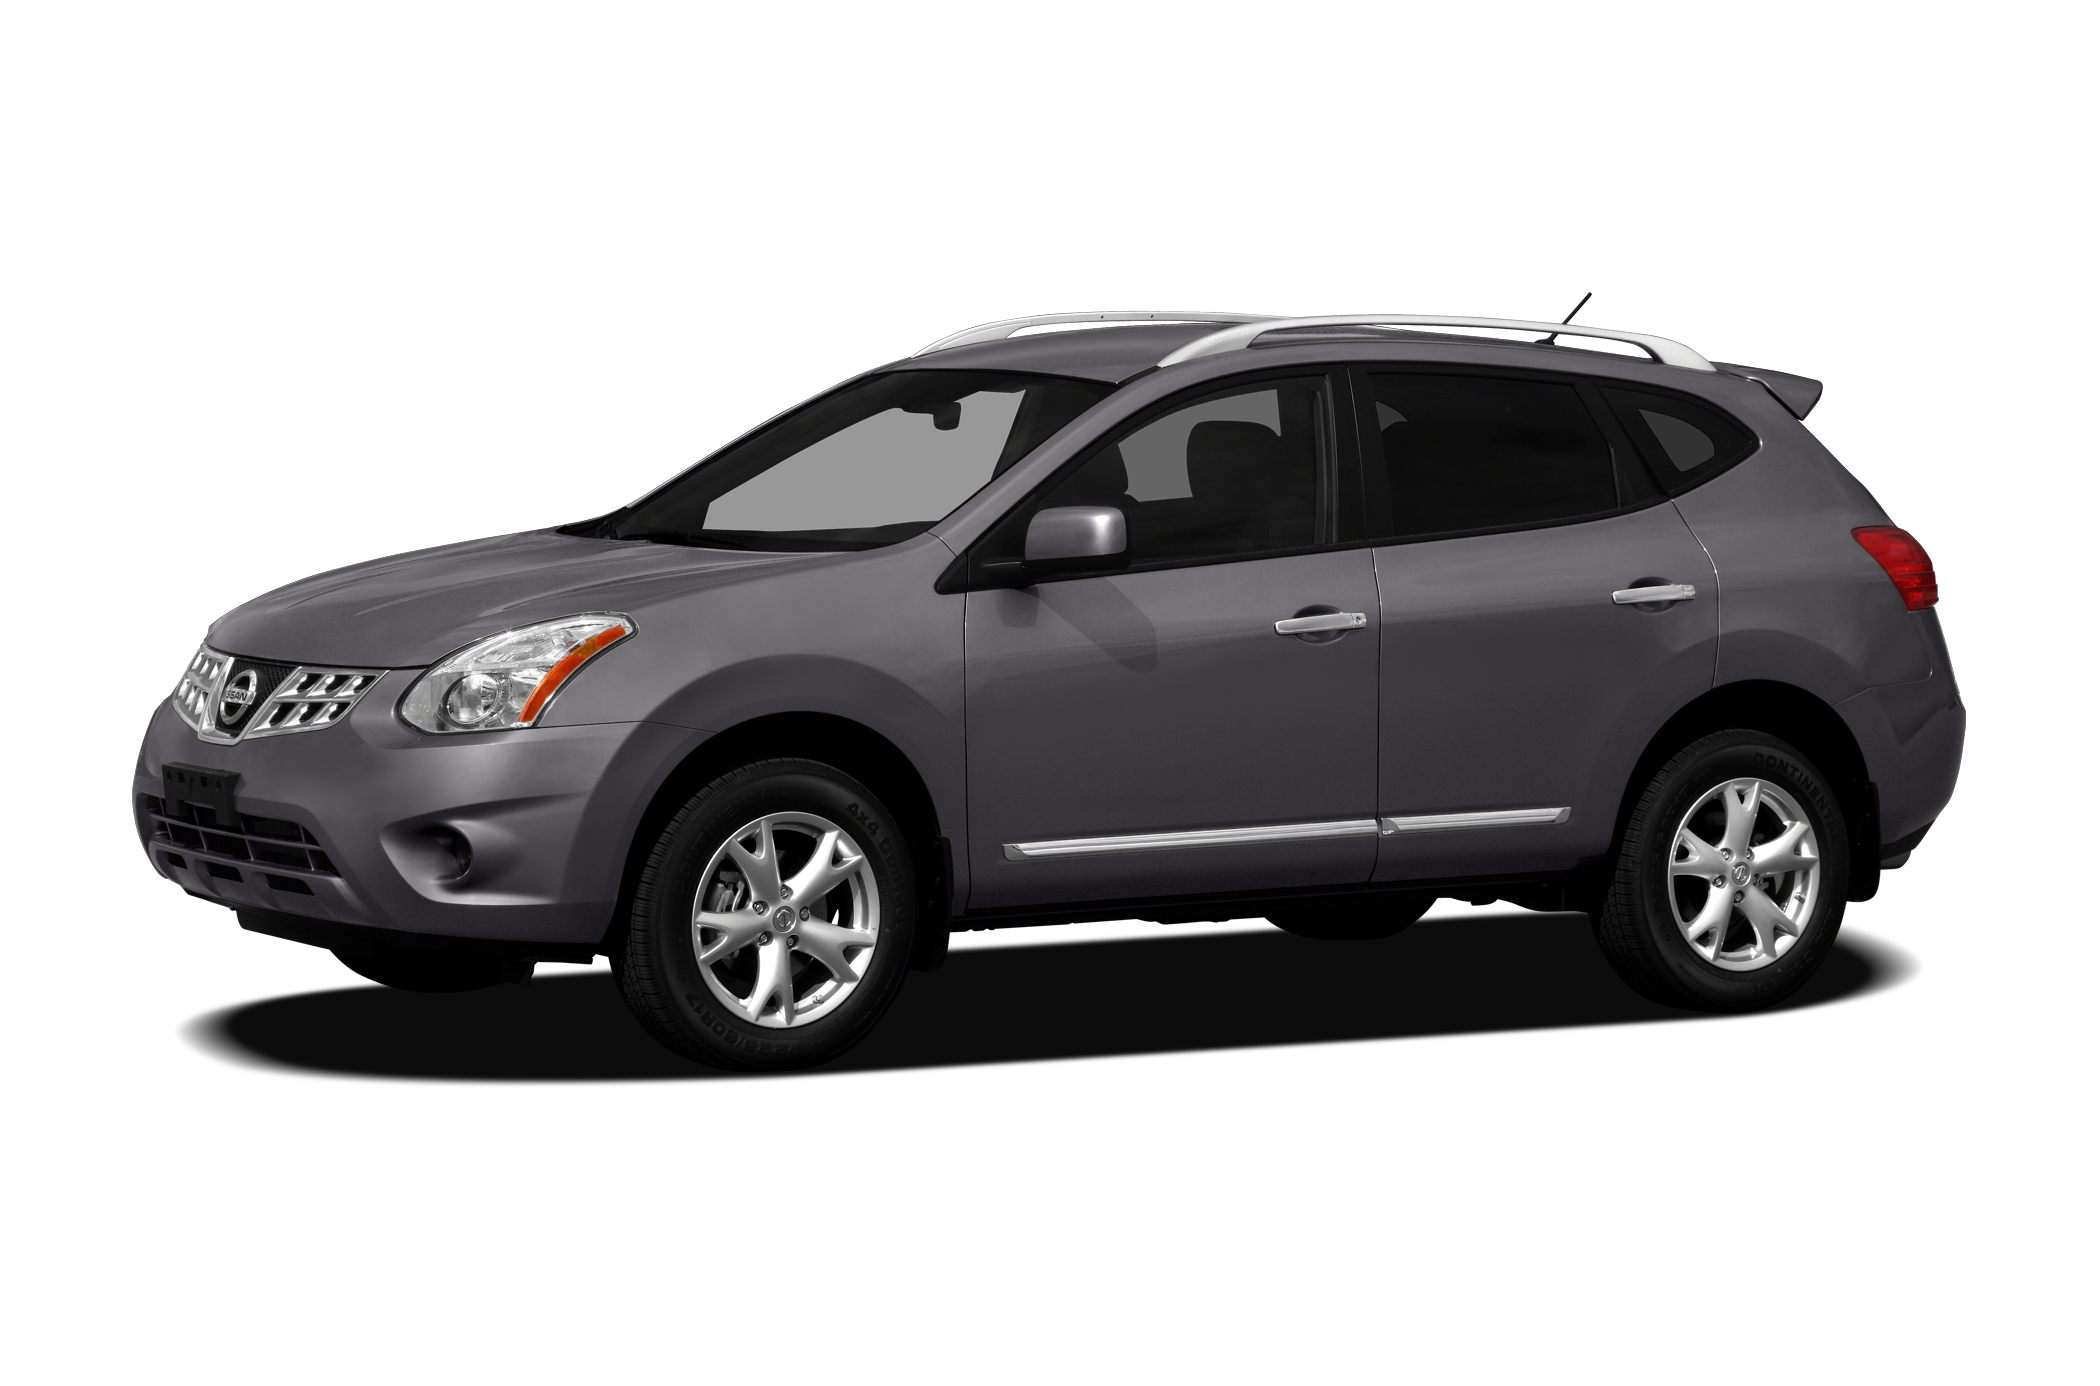 2012 Nissan Rogue SV CARFAX 1-Owner ONLY 29377 Miles JUST REPRICED FROM 21877 EPA 26 MPG Hwy